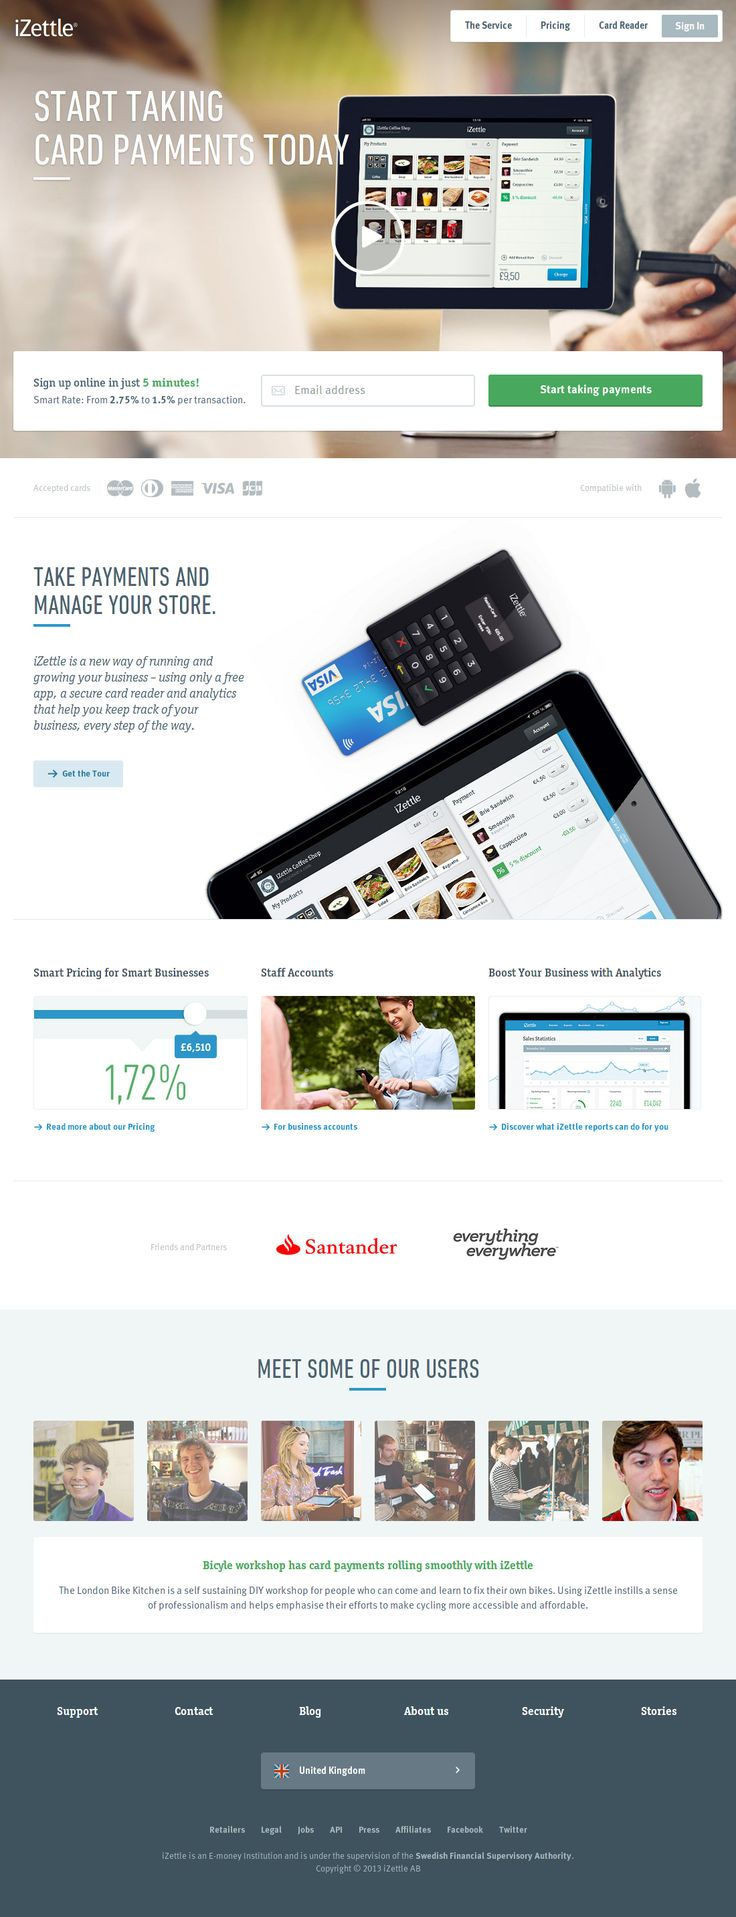 iZettle Website #web #ui #design